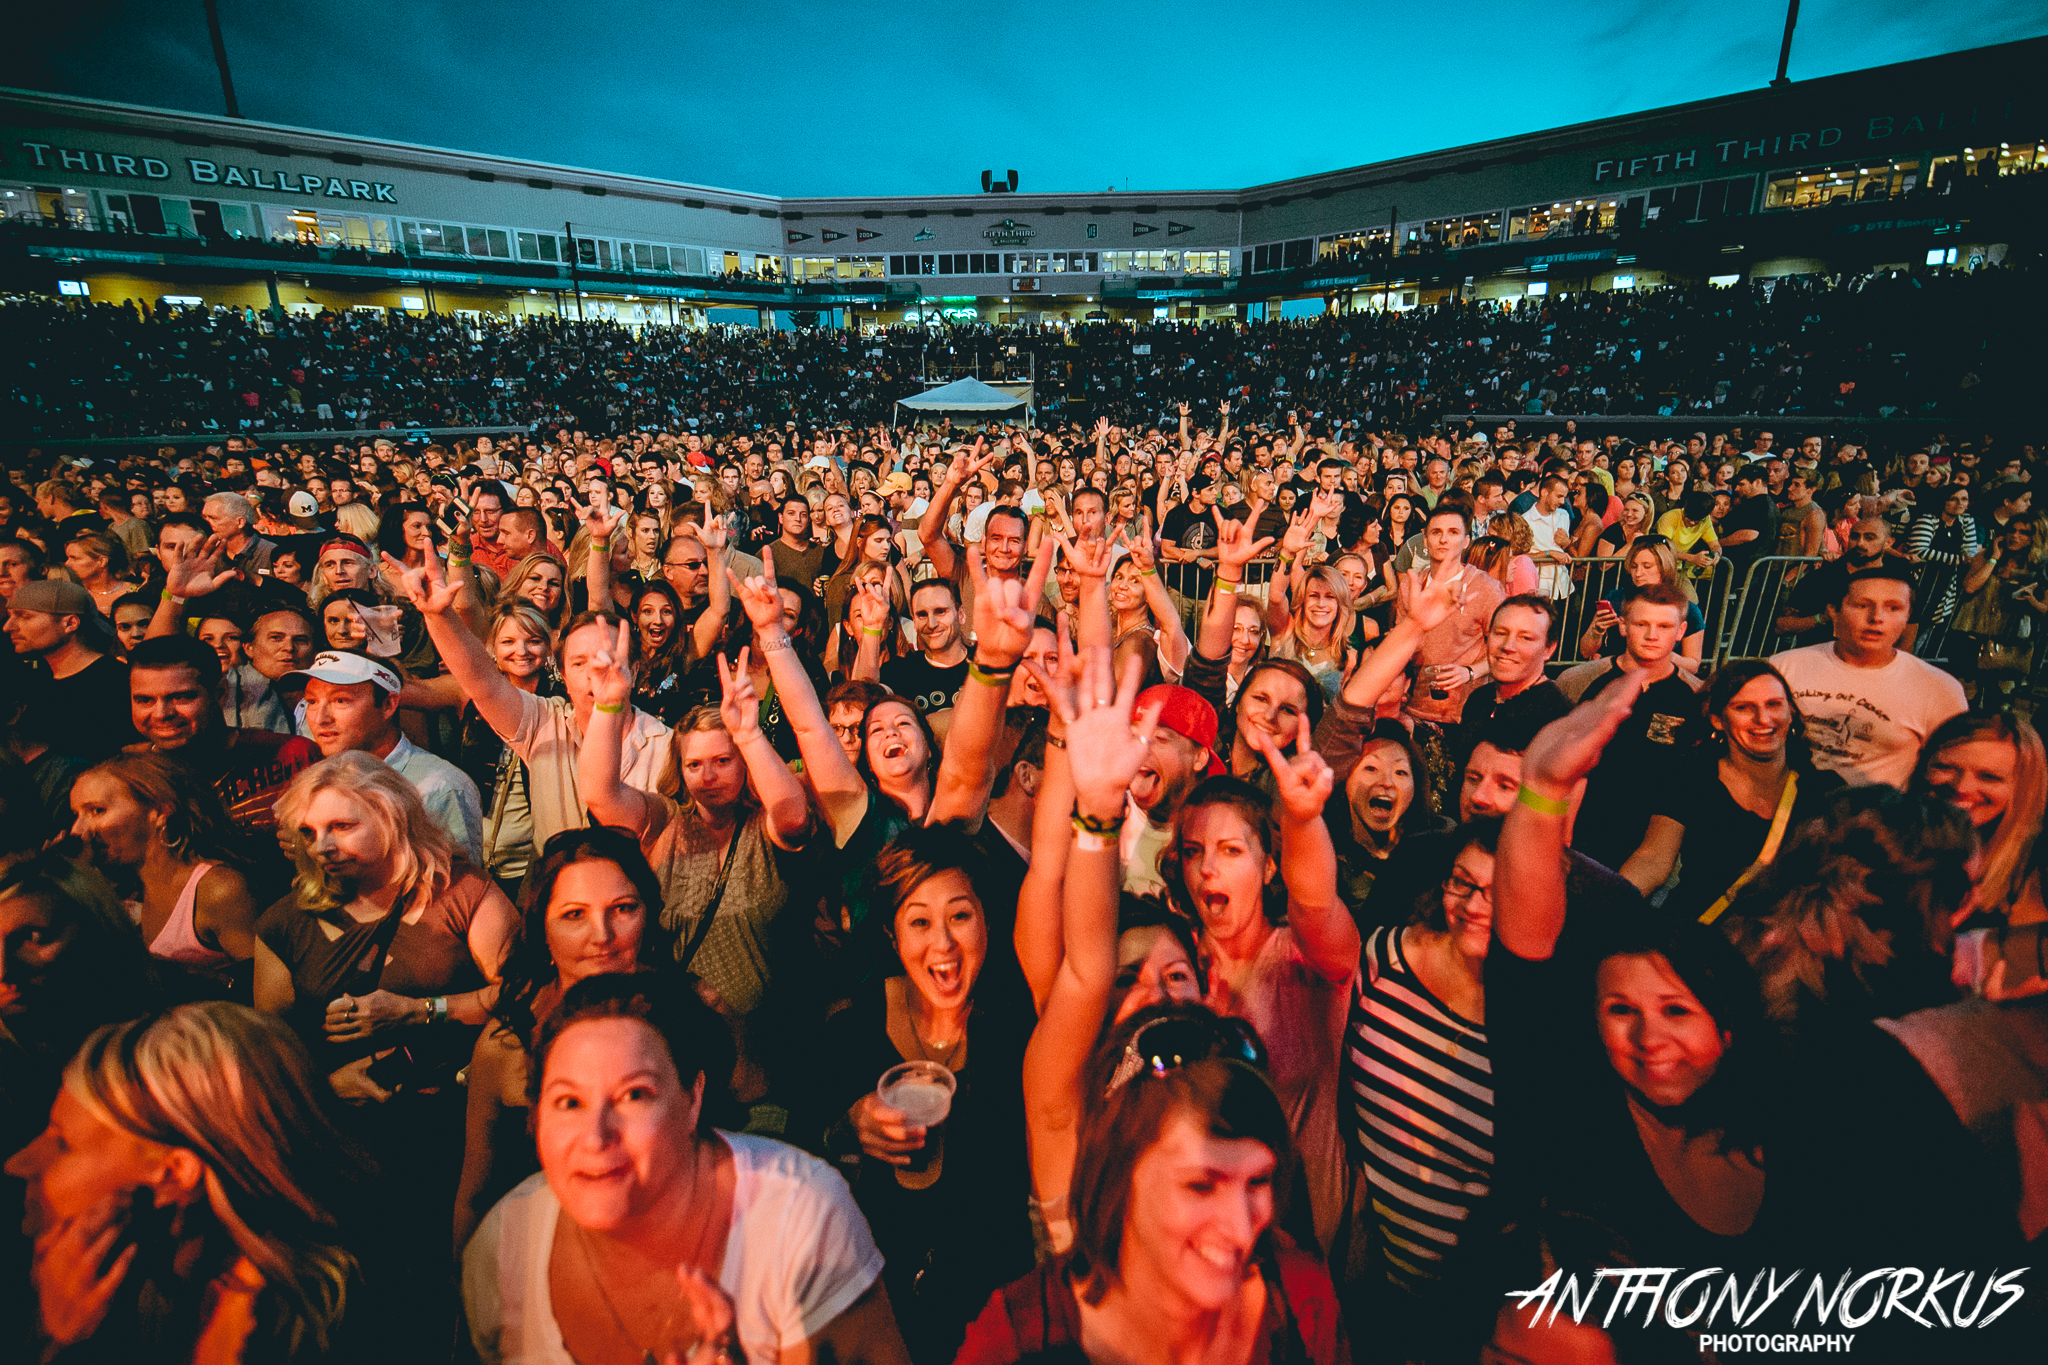 Goo Goo Dolls Daughtry Light Up 9000 Strong With Solid Hits At The